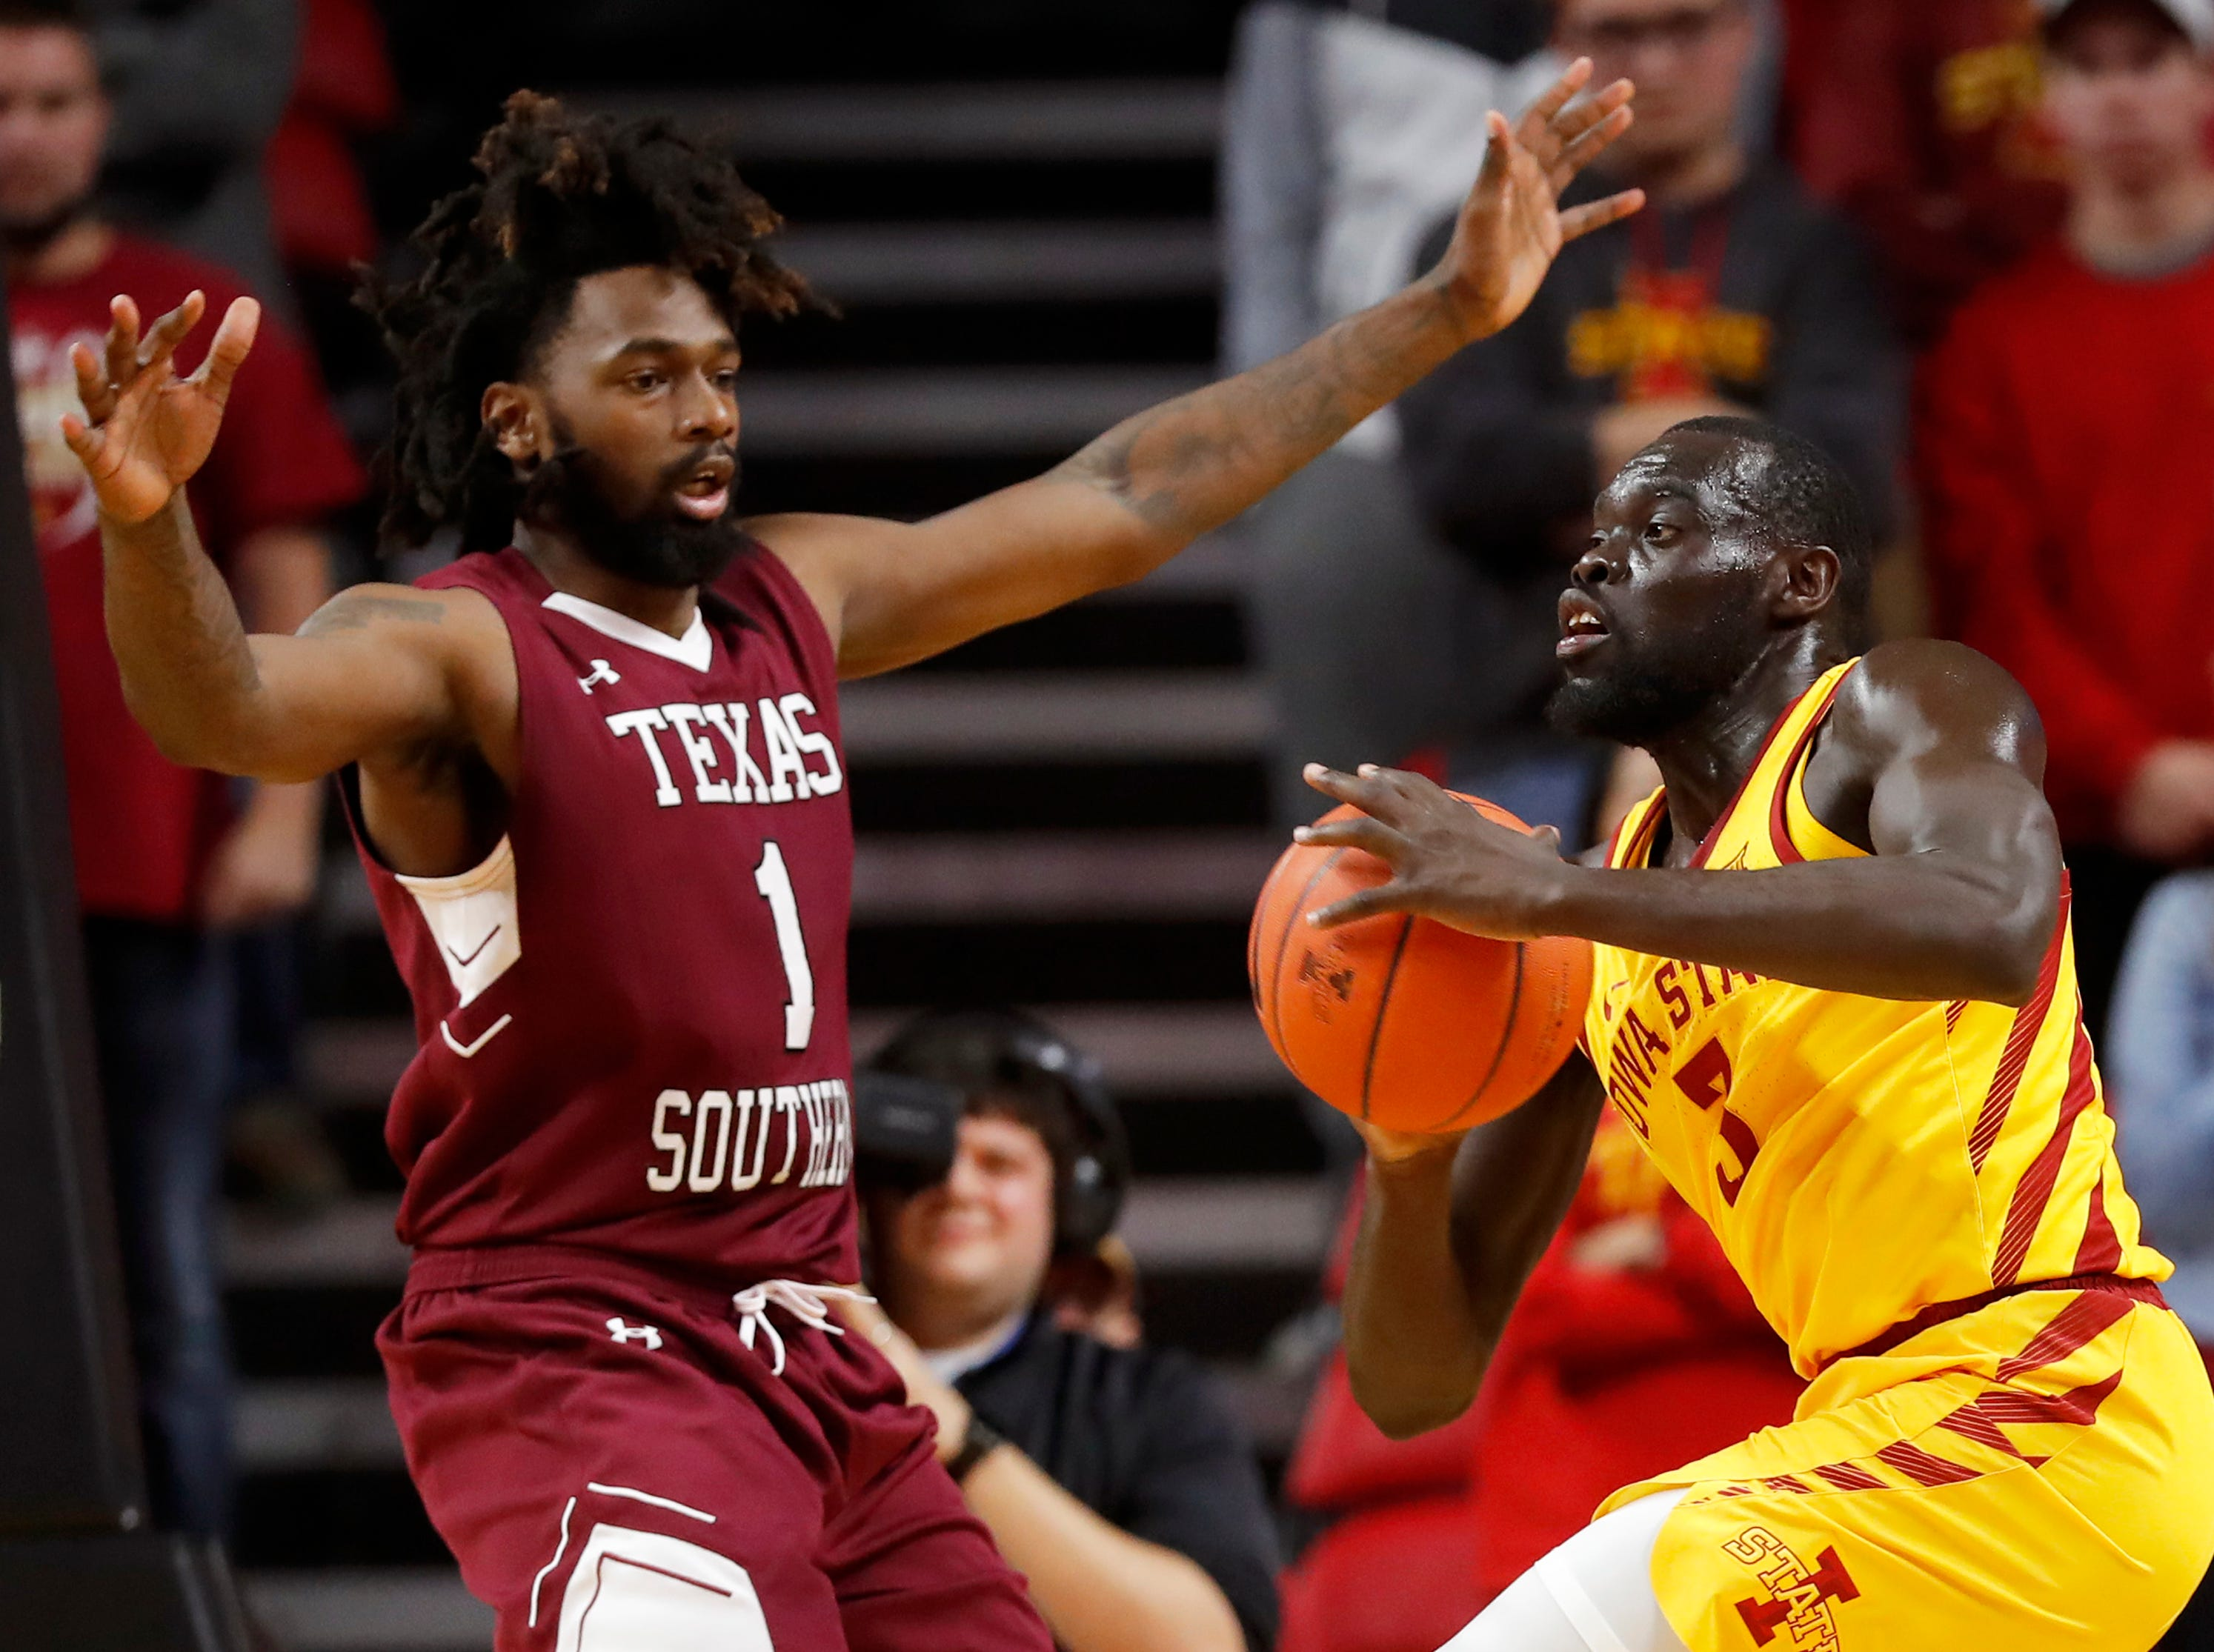 Iowa State guard Marial Shayok looks to pass in front of Texas Southern forward Jeremy Combs (1) during the second half of an NCAA college basketball game, Monday, Nov. 12, 2018, in Ames, Iowa. Iowa State won 85-73.